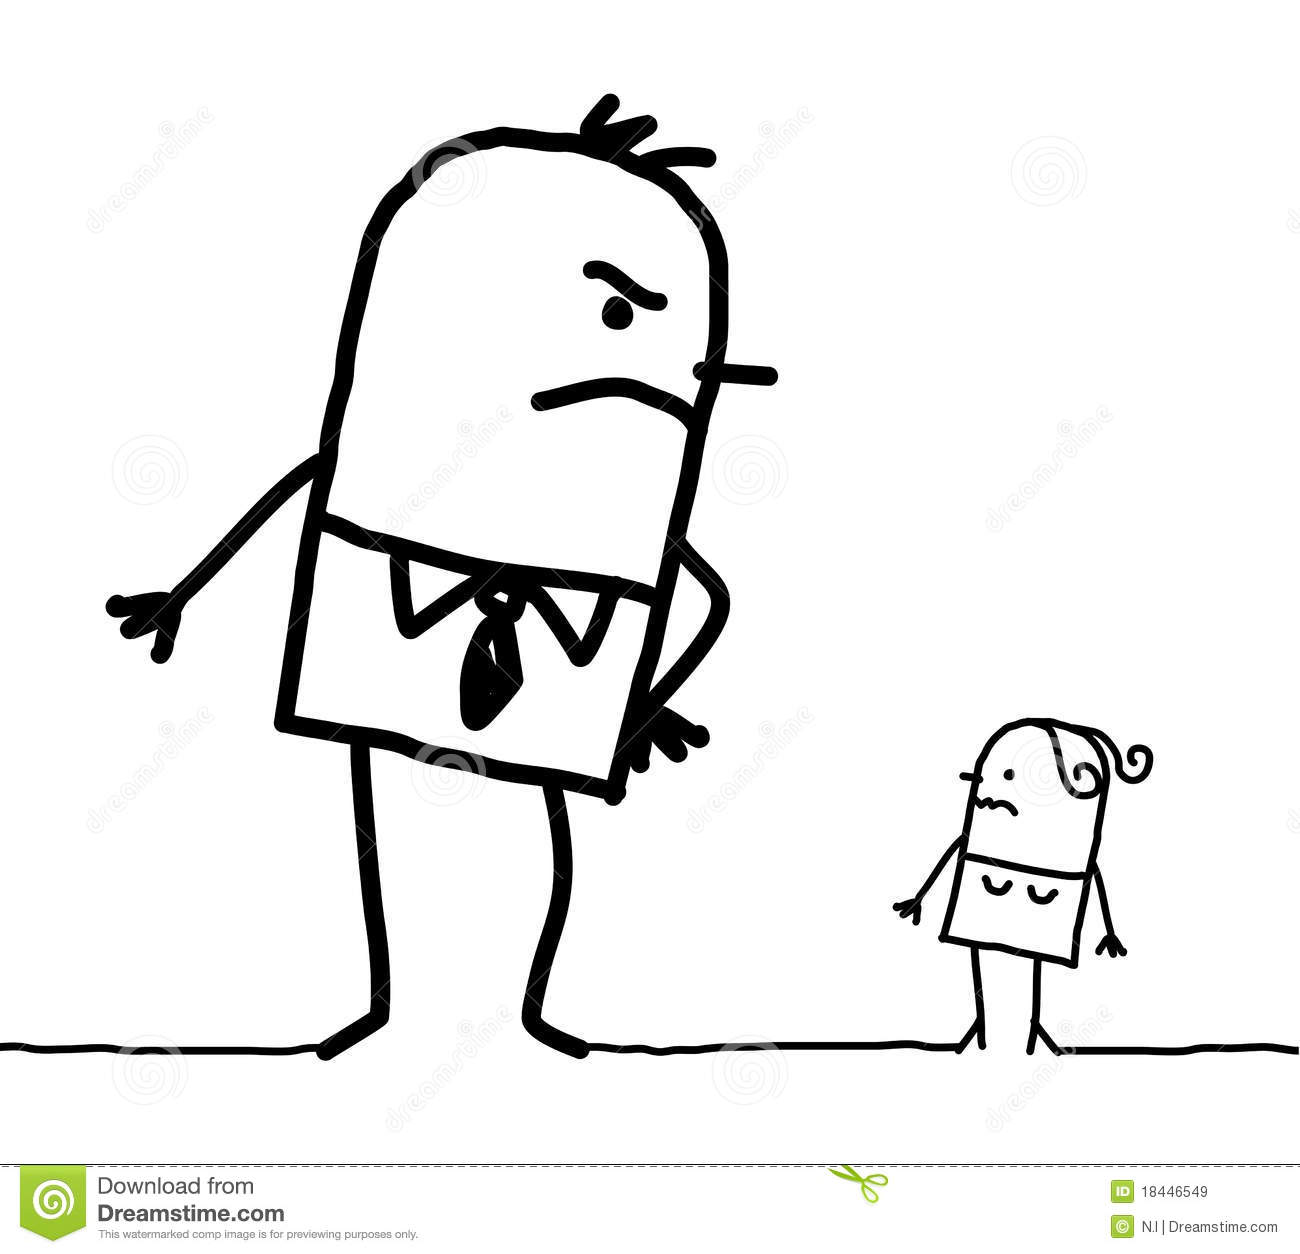 Big Man & Small Woman Royalty Free Stock Image